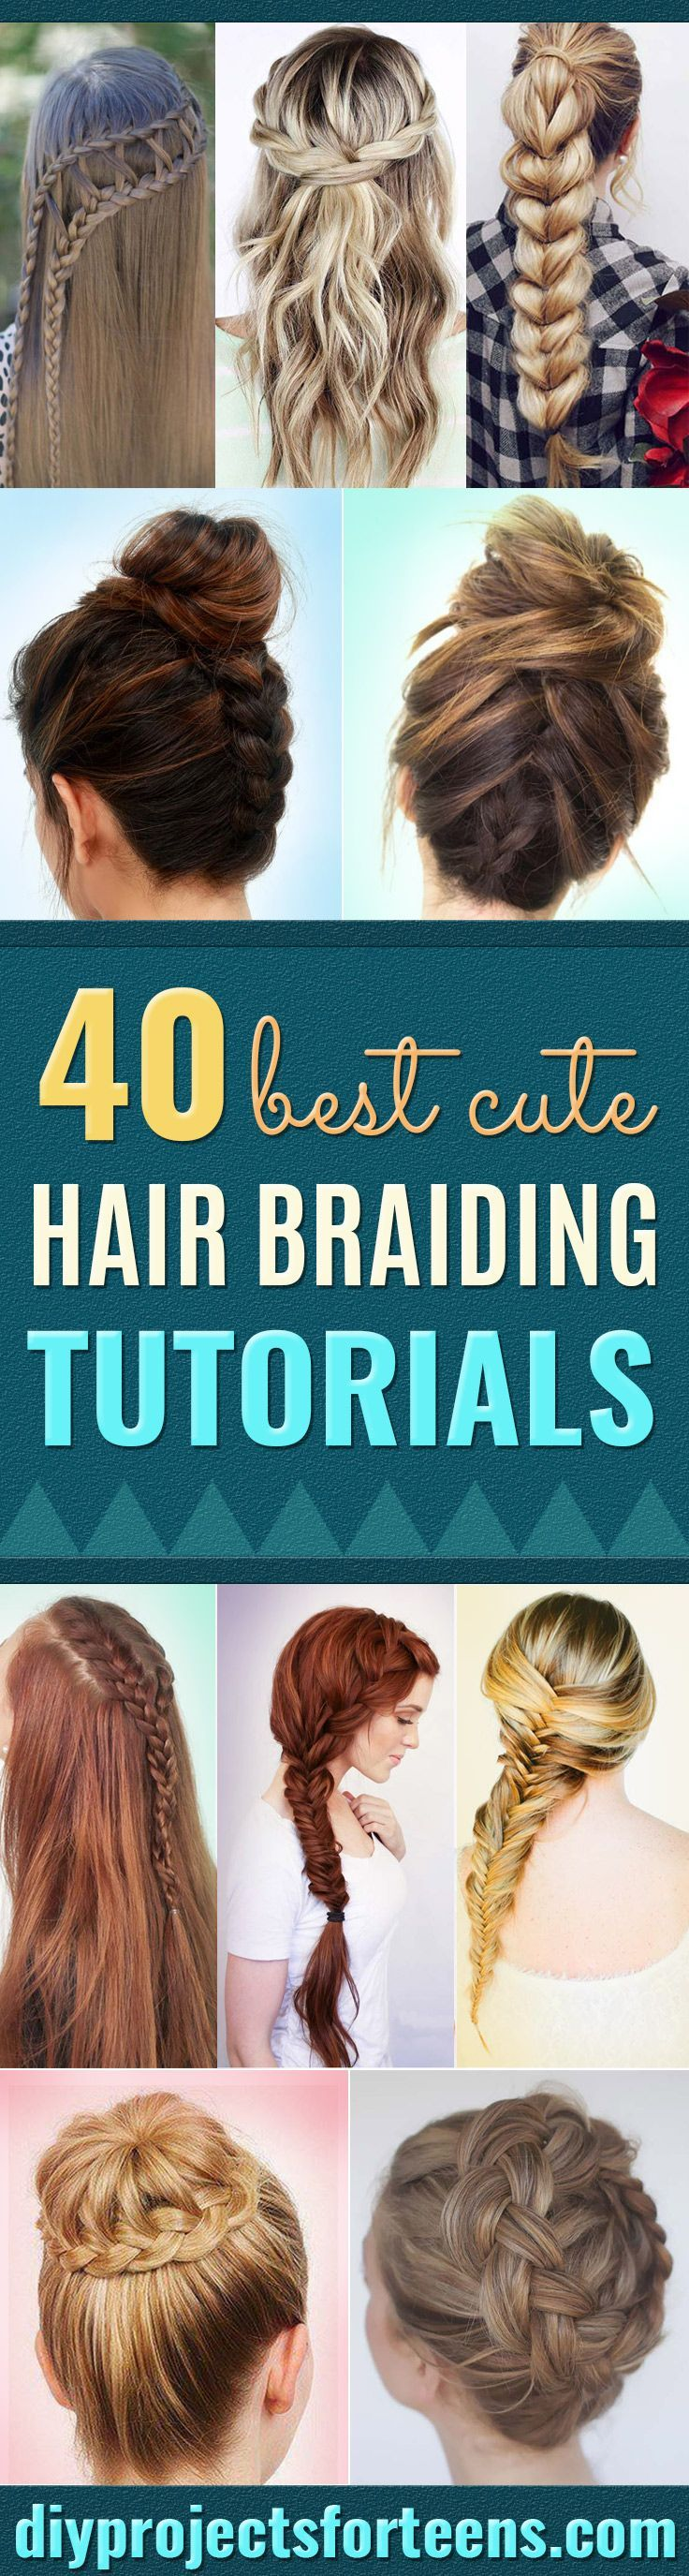 Best Hair Braiding Tutorials  - Easy Step by Step Tutorials for Braids - How To ...